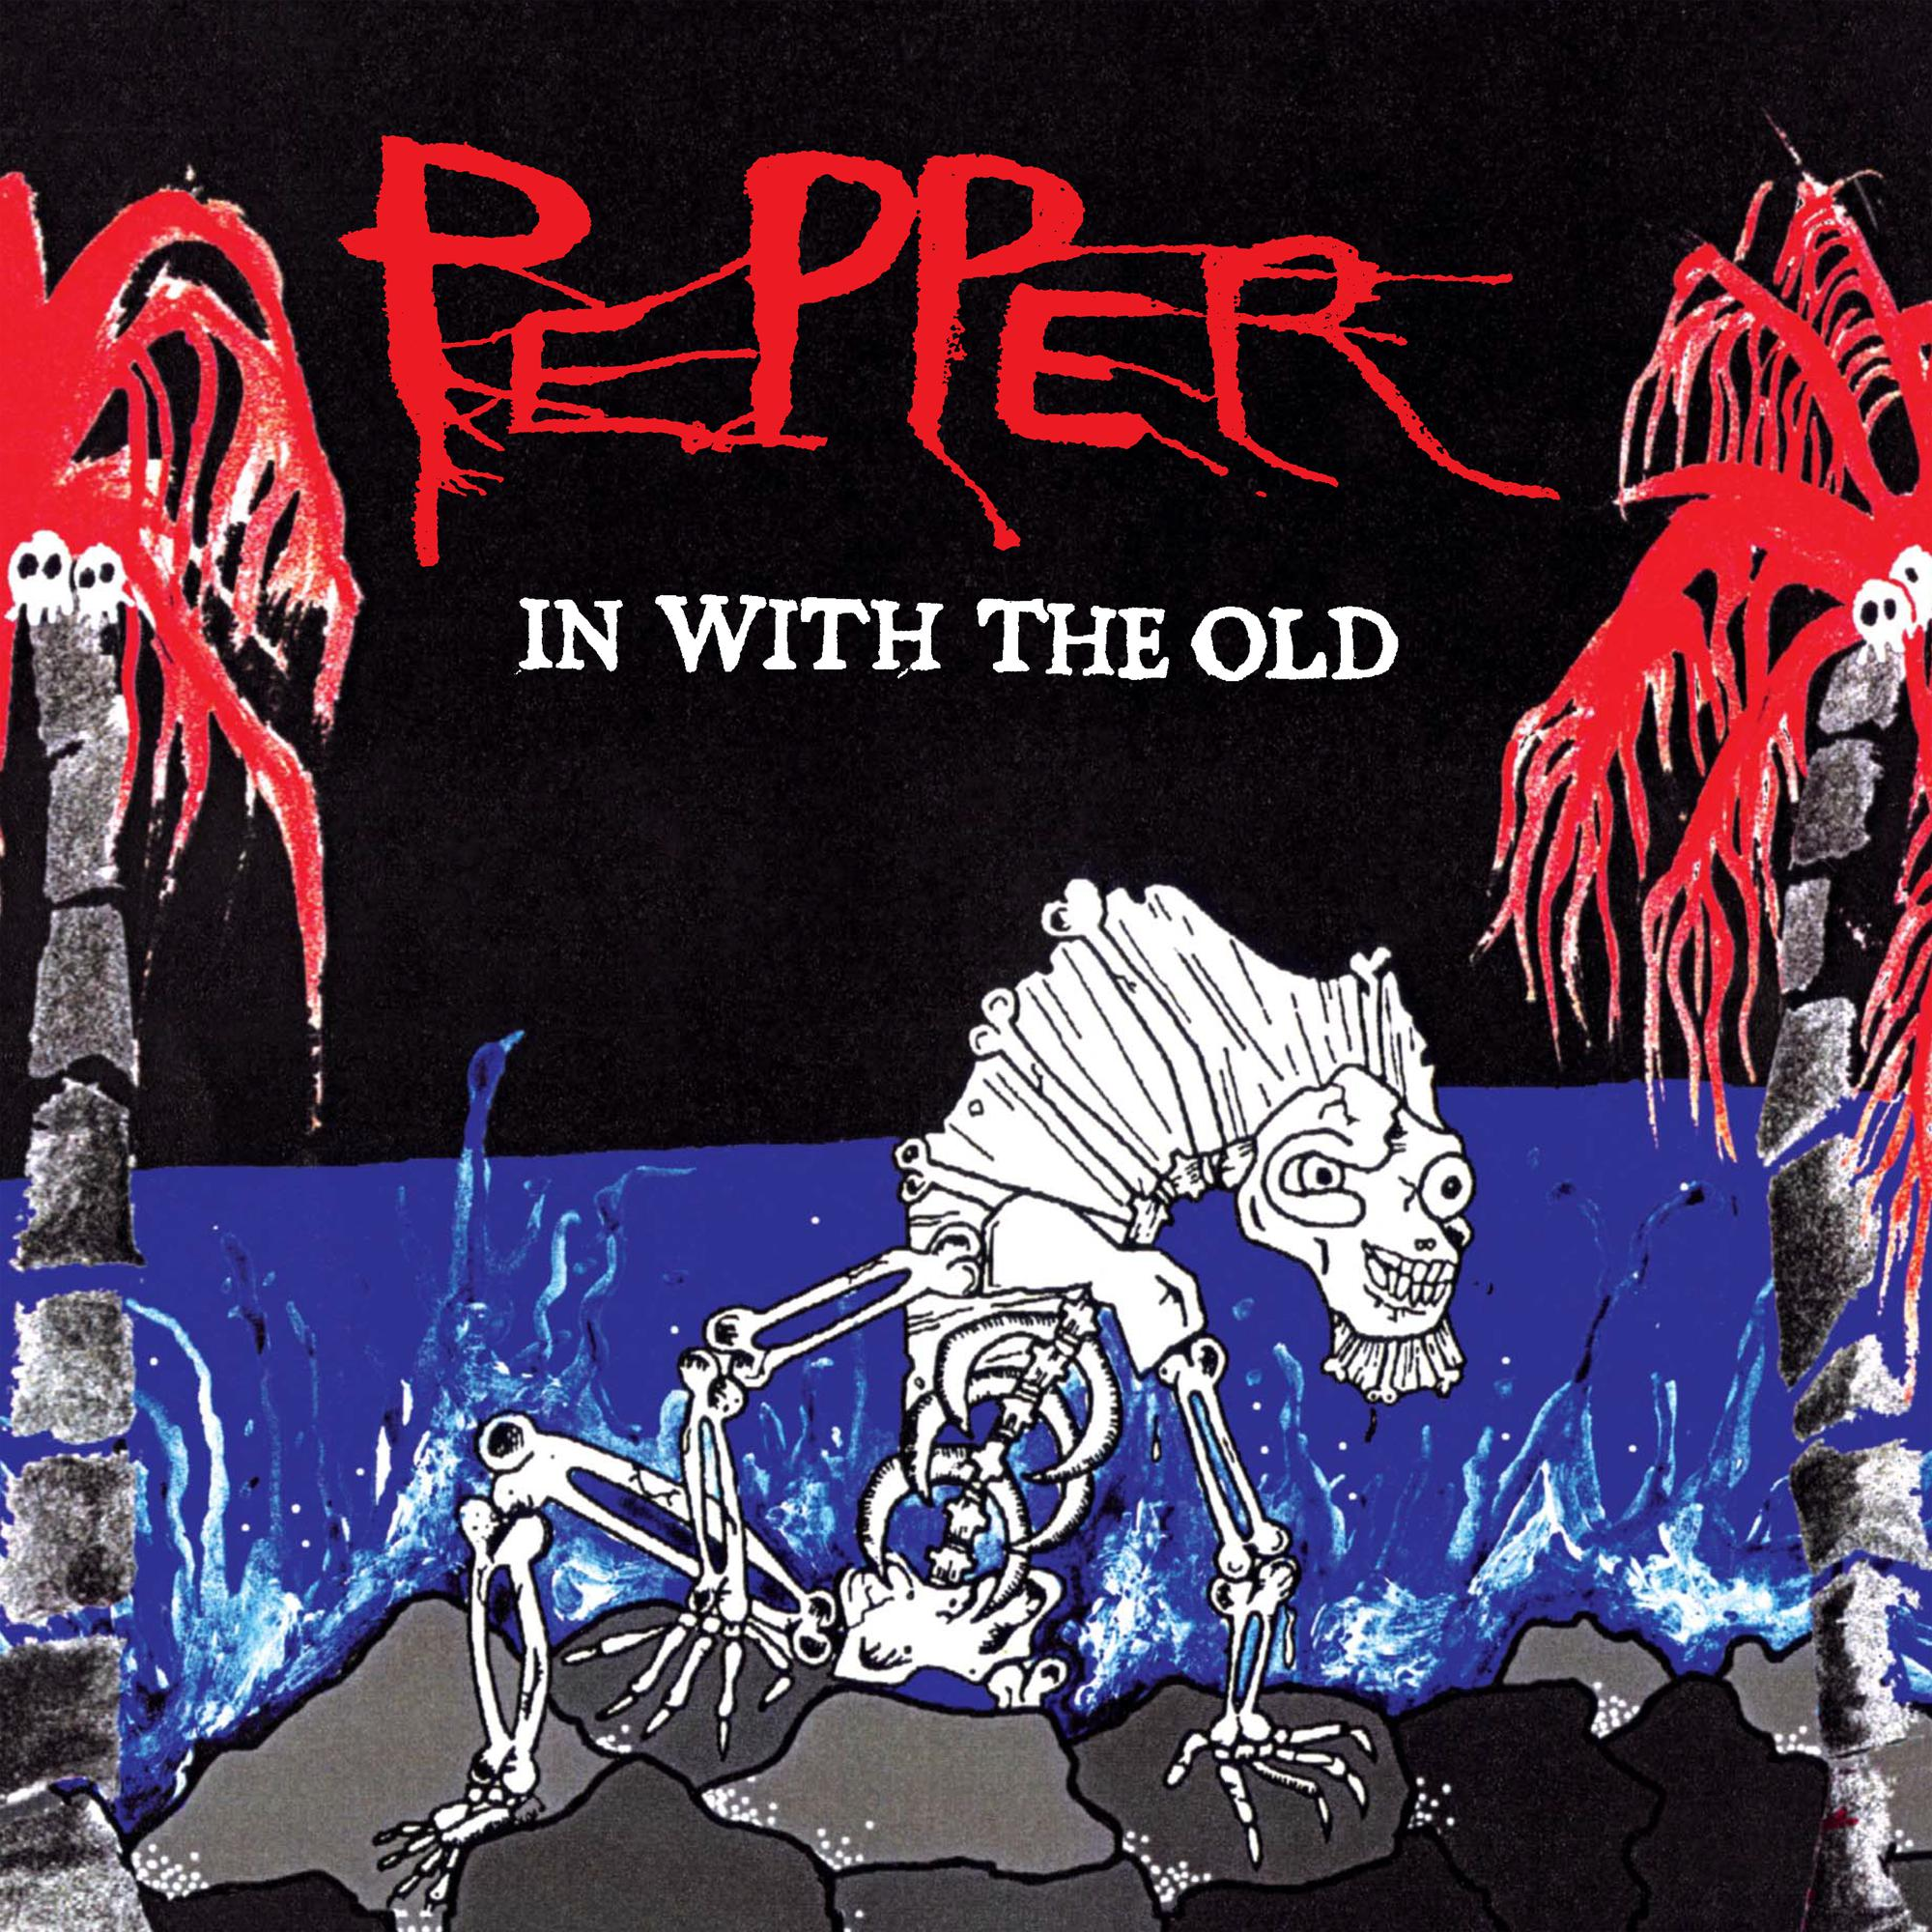 Pepper - In With The Old [RSD Drops 2021]